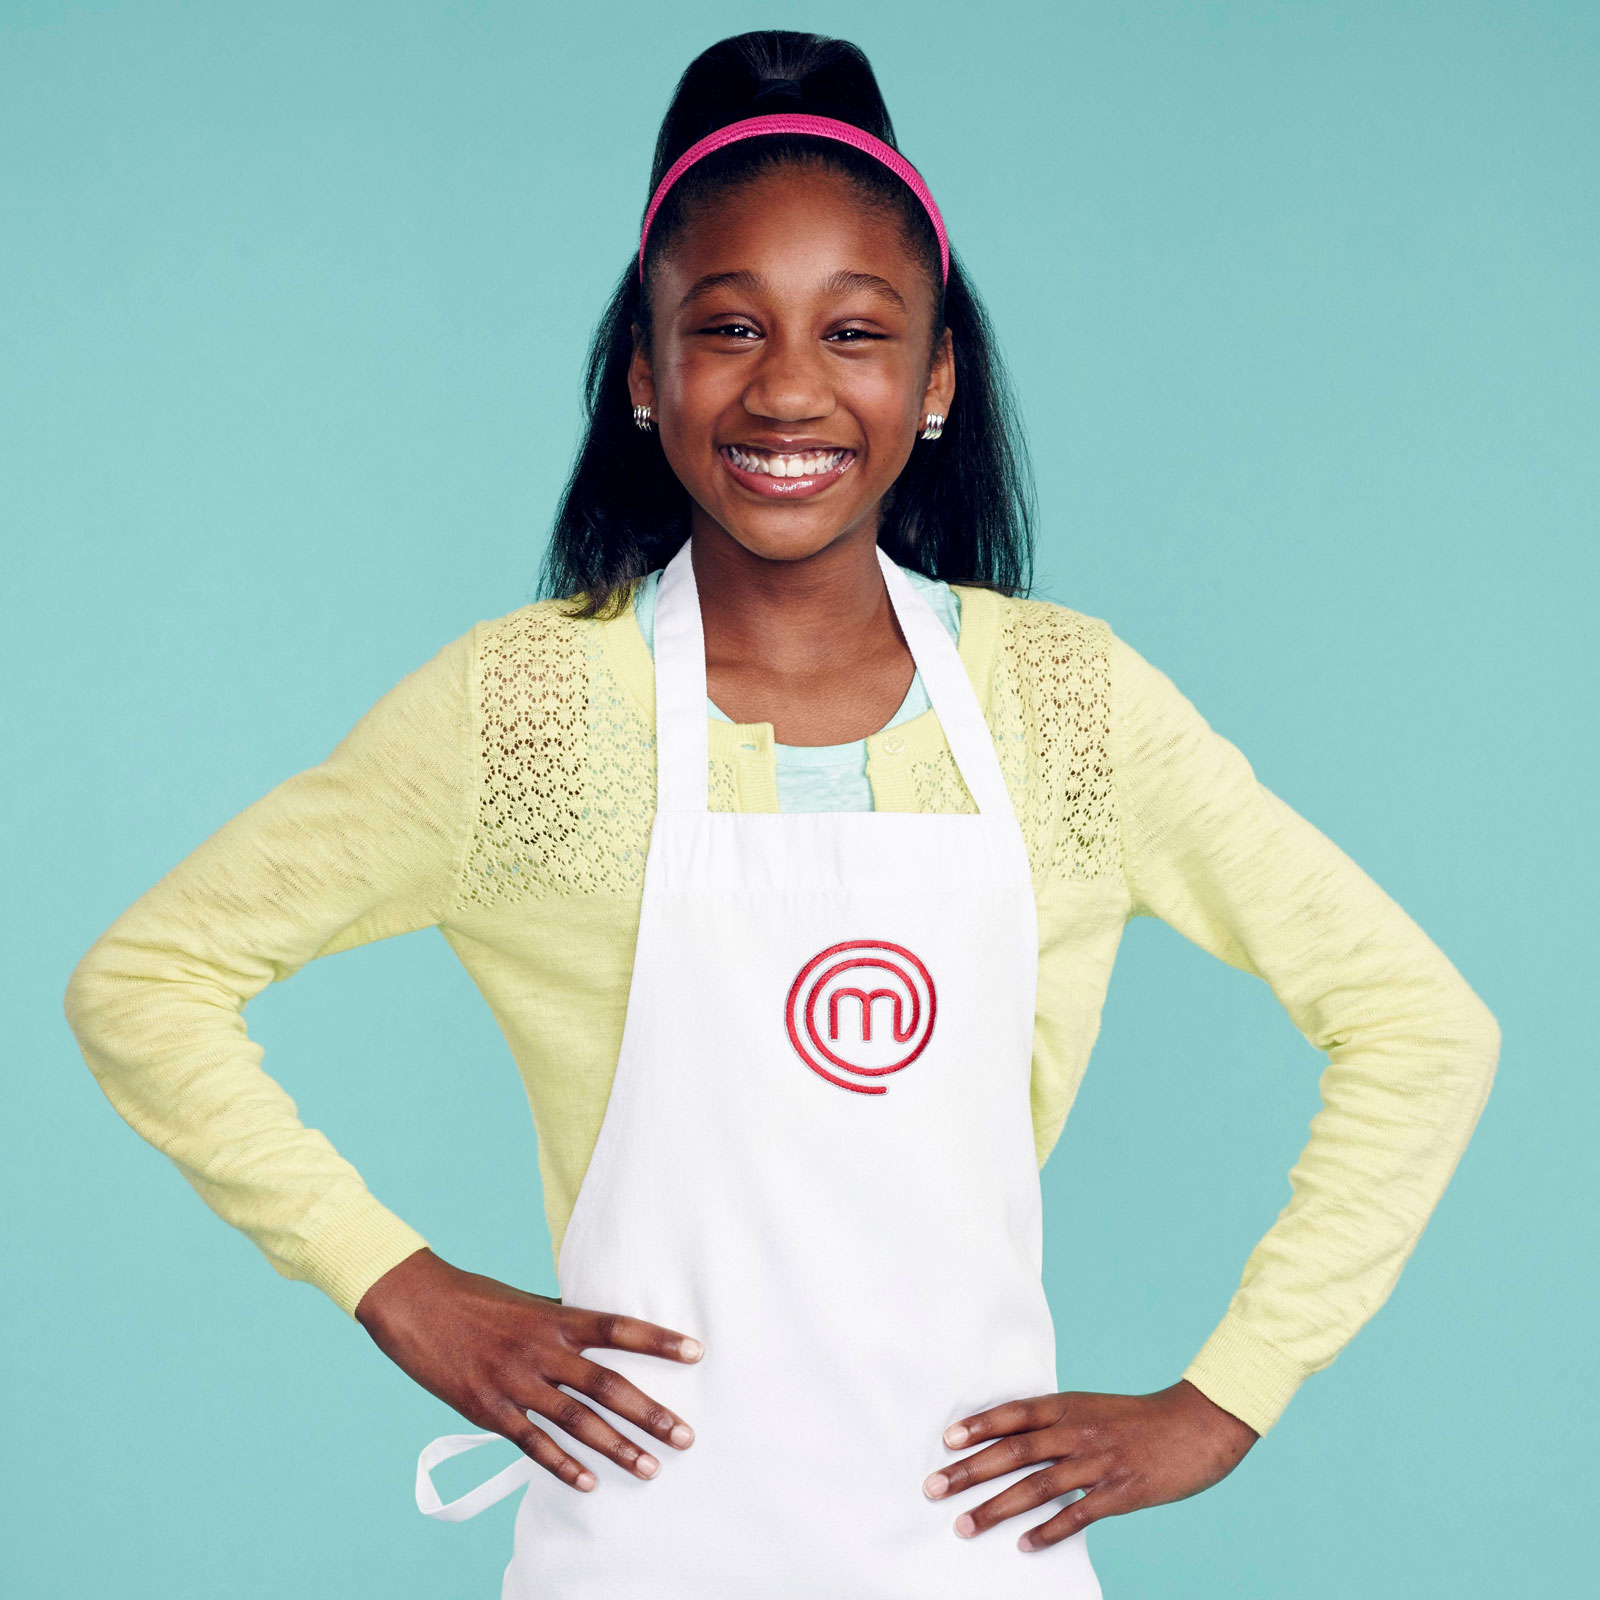 jasmine-stewart-masterchef-junior-FT-BLOG0518.jpg